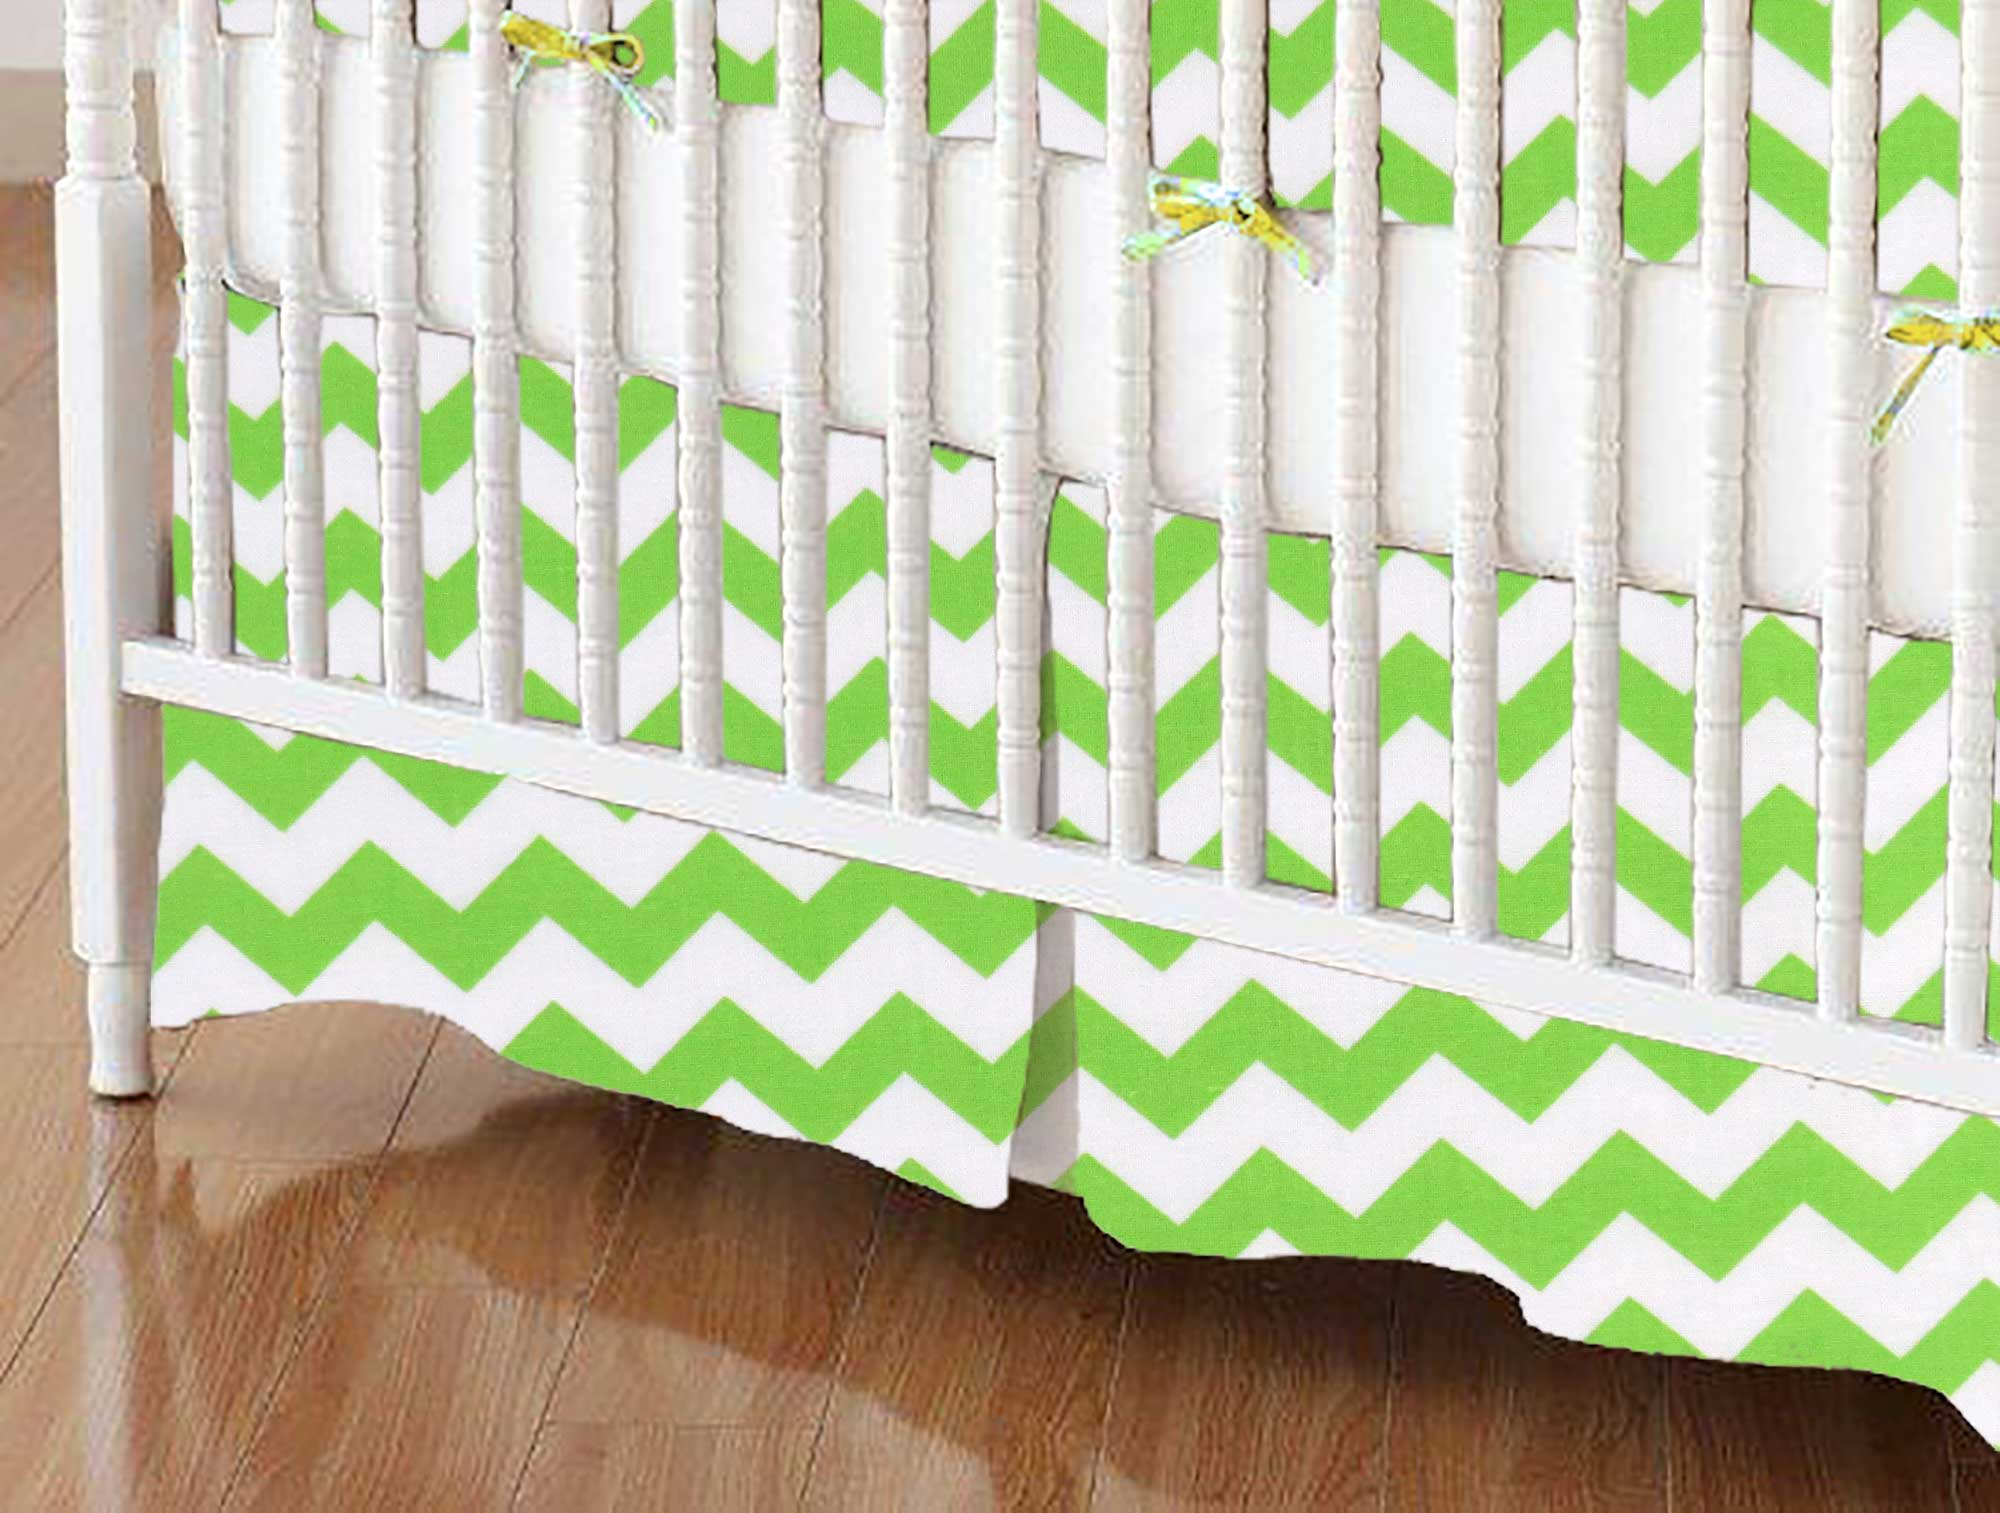 Crib Skirt - Lime Chevron Zigzag